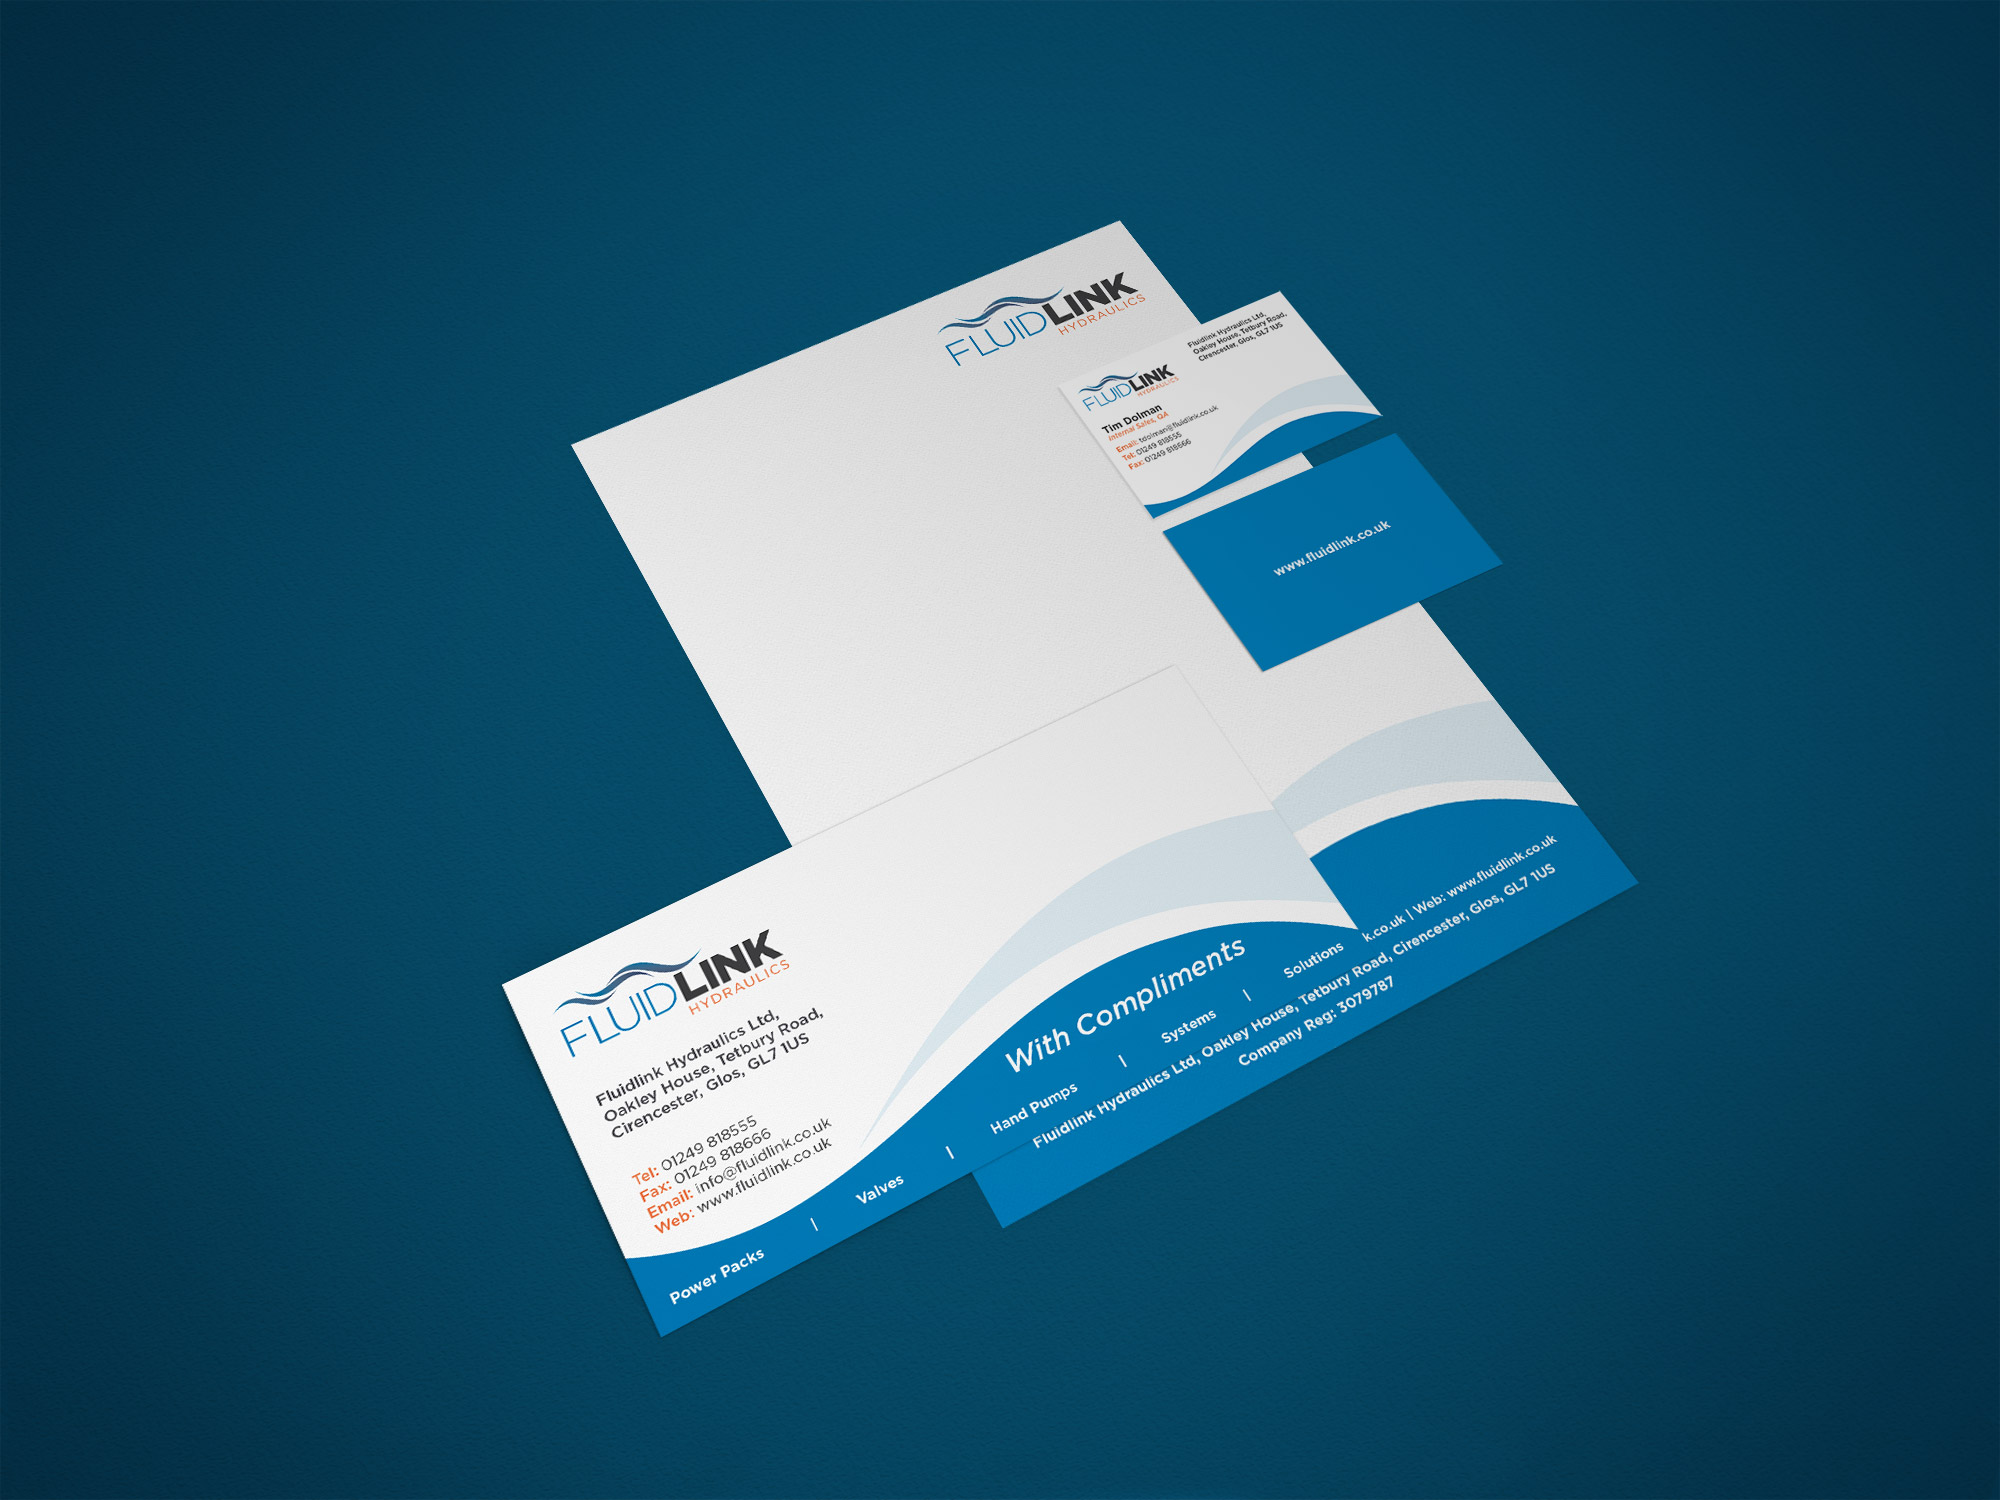 Fluidlink stationery design